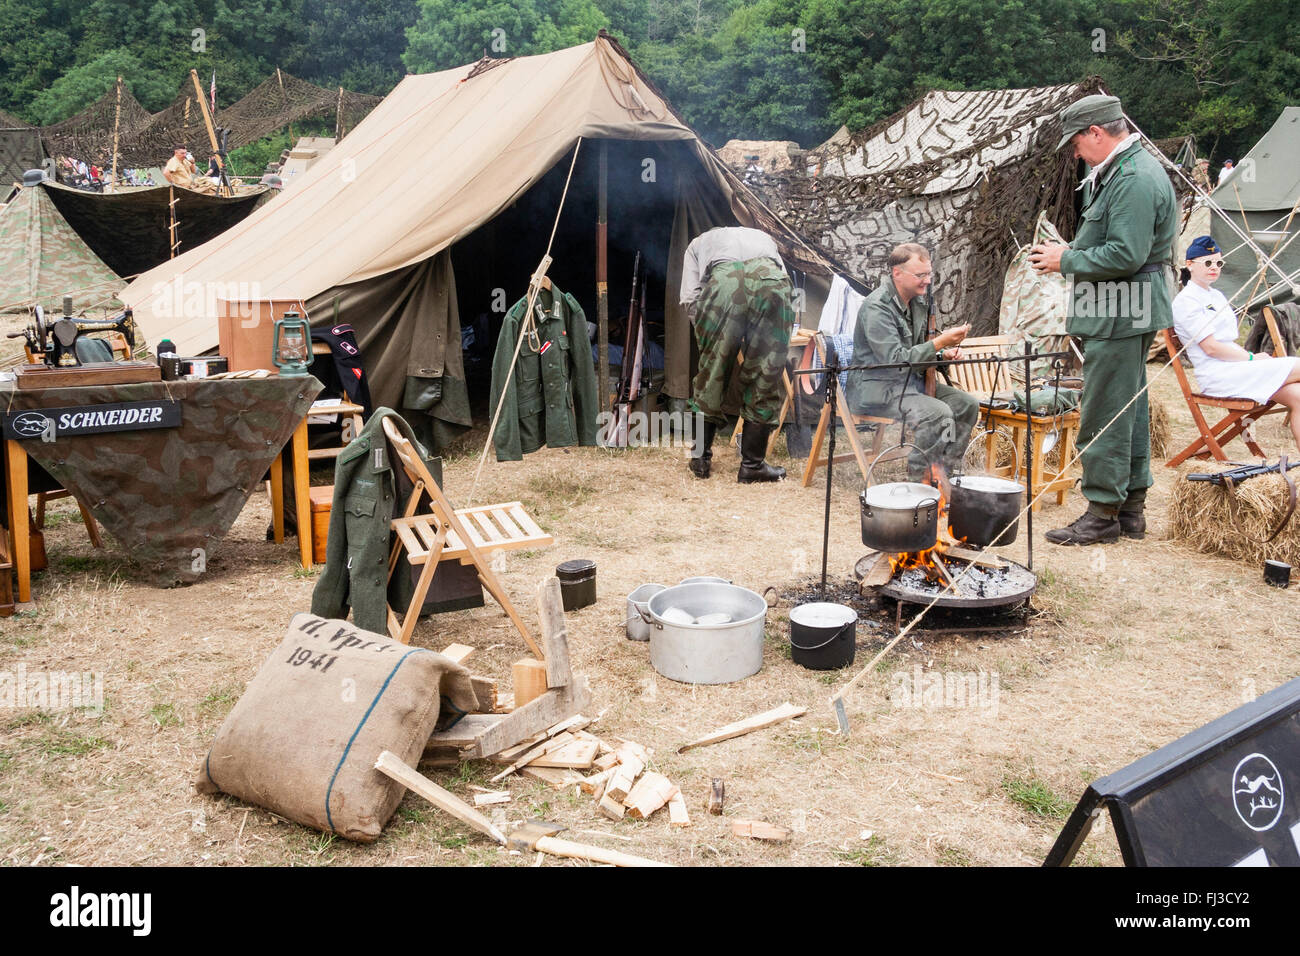 Second world war re-enactment. German encampment with tents, food cooking in pots over fire, soldiers and nurse. - Stock Image